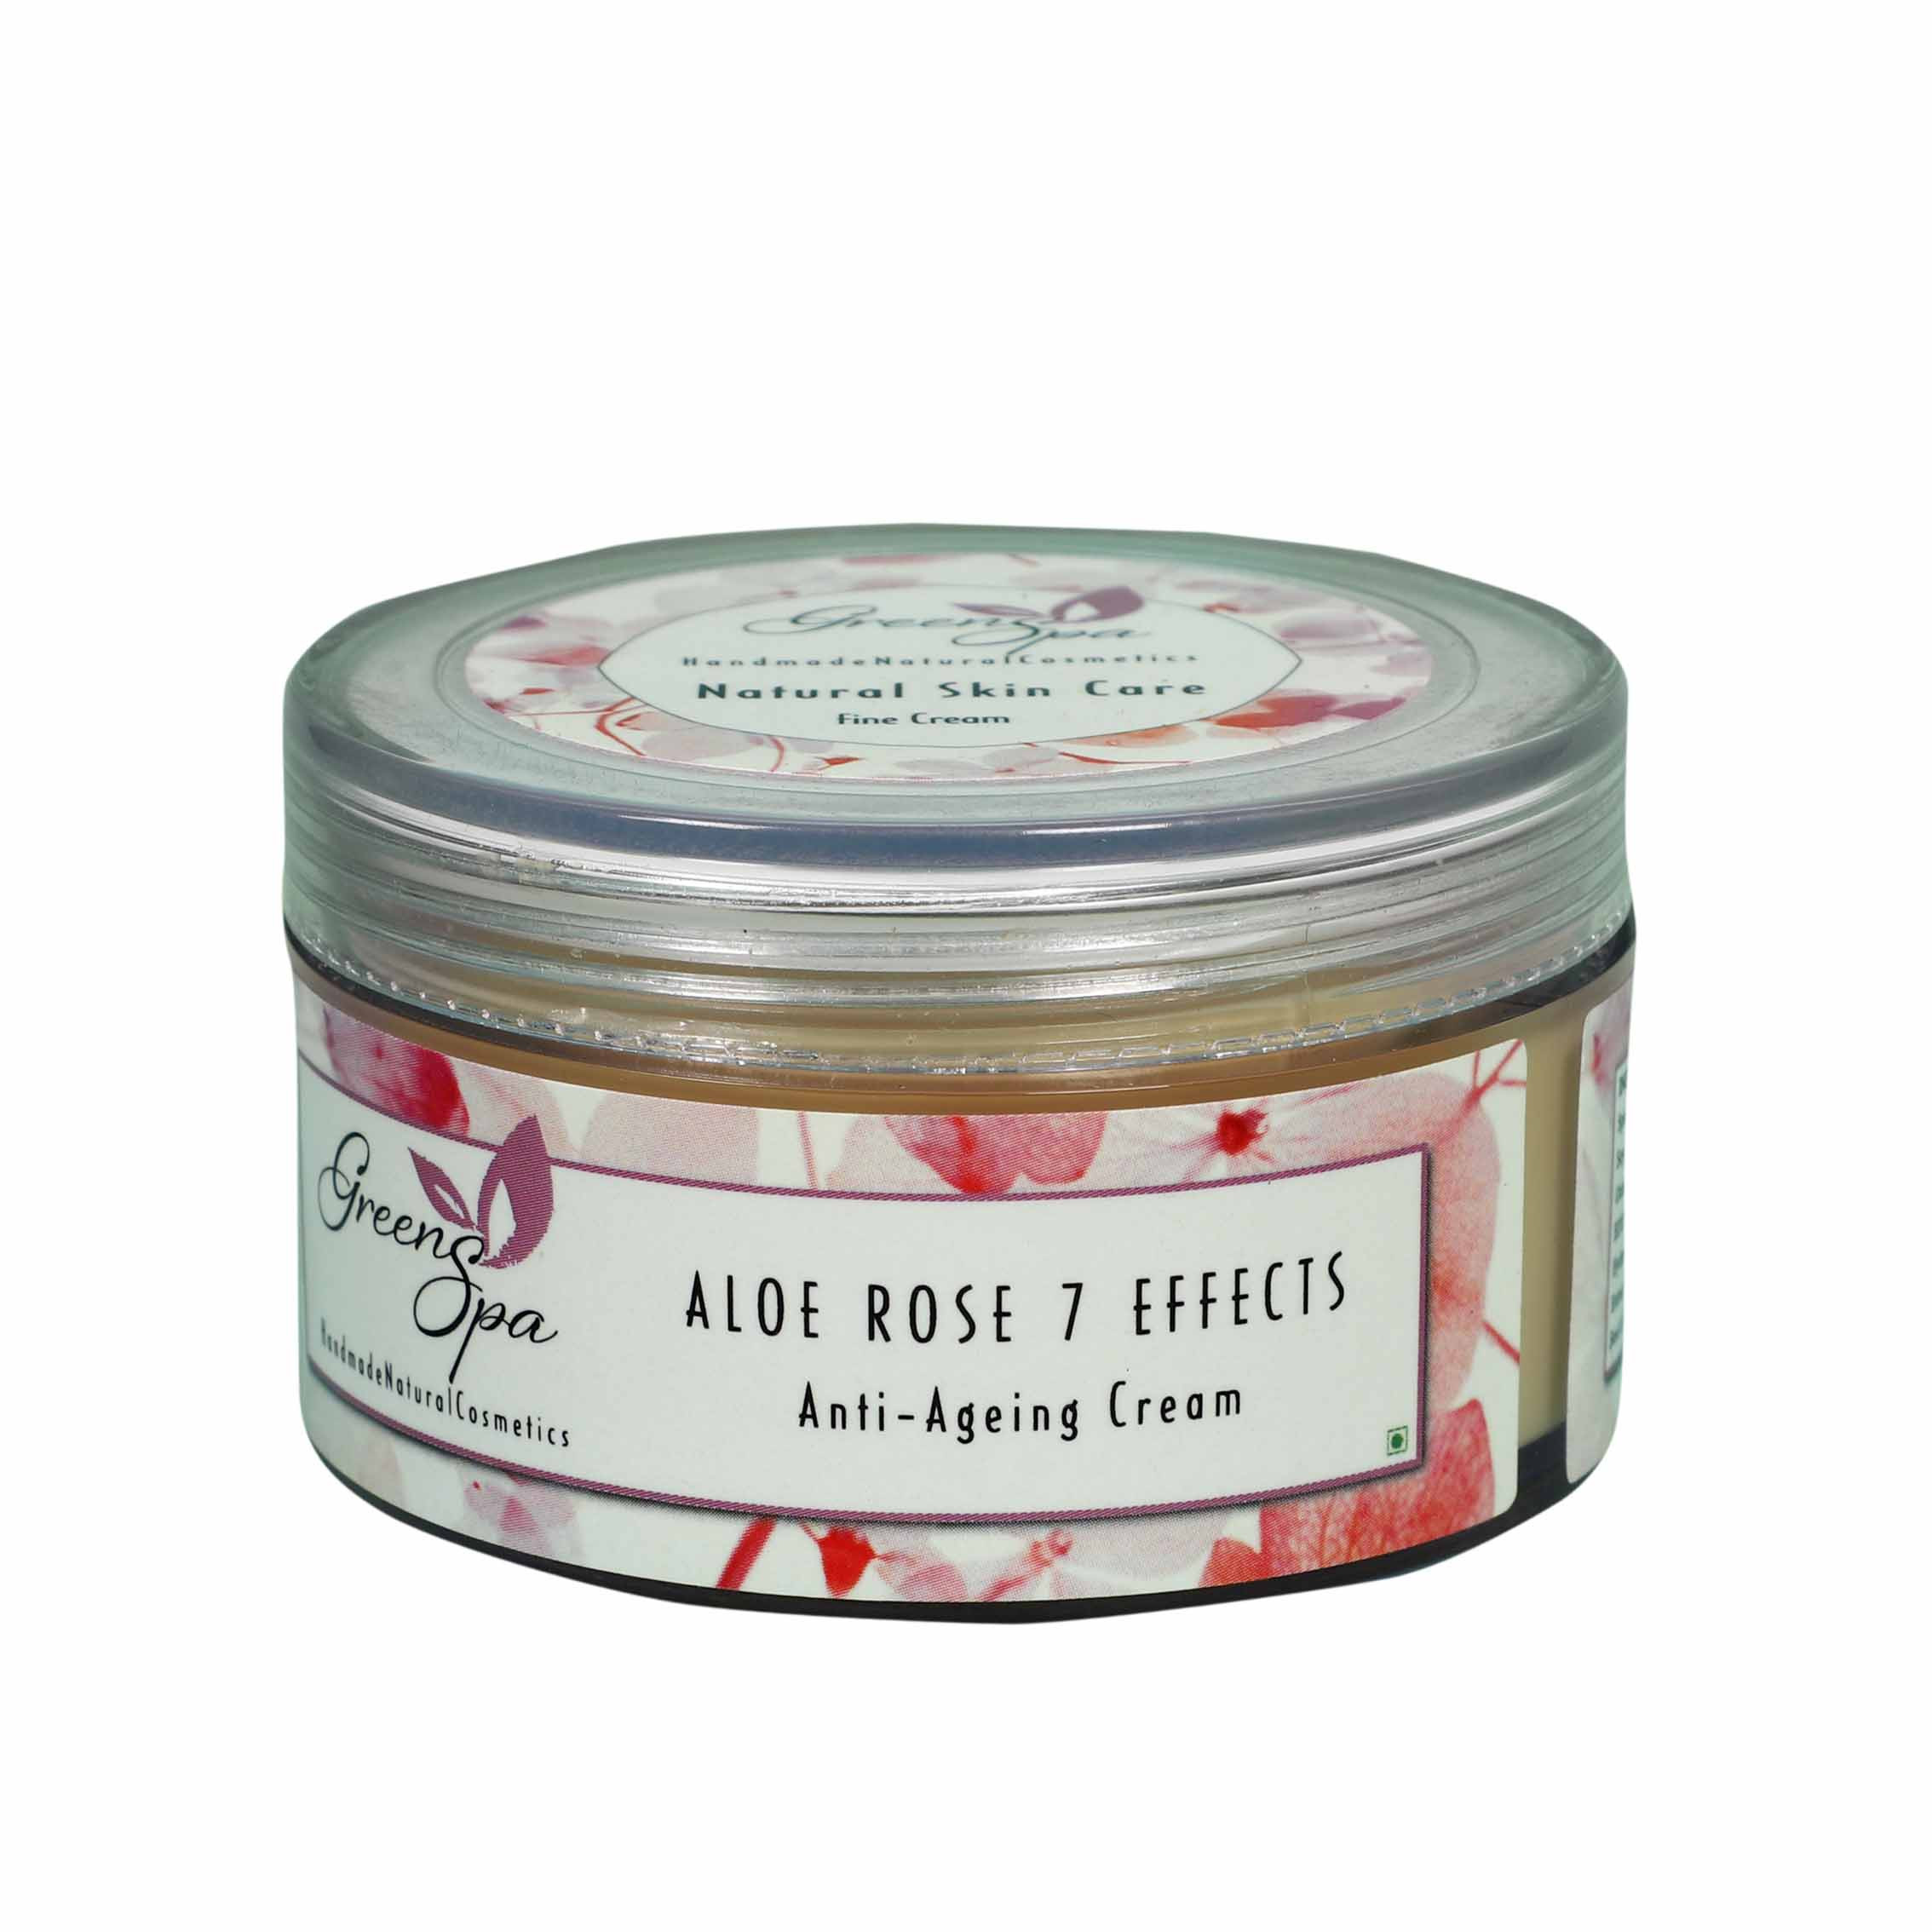 Greenspa  Aloe Rose 7 Effects Anti Ageing Cream